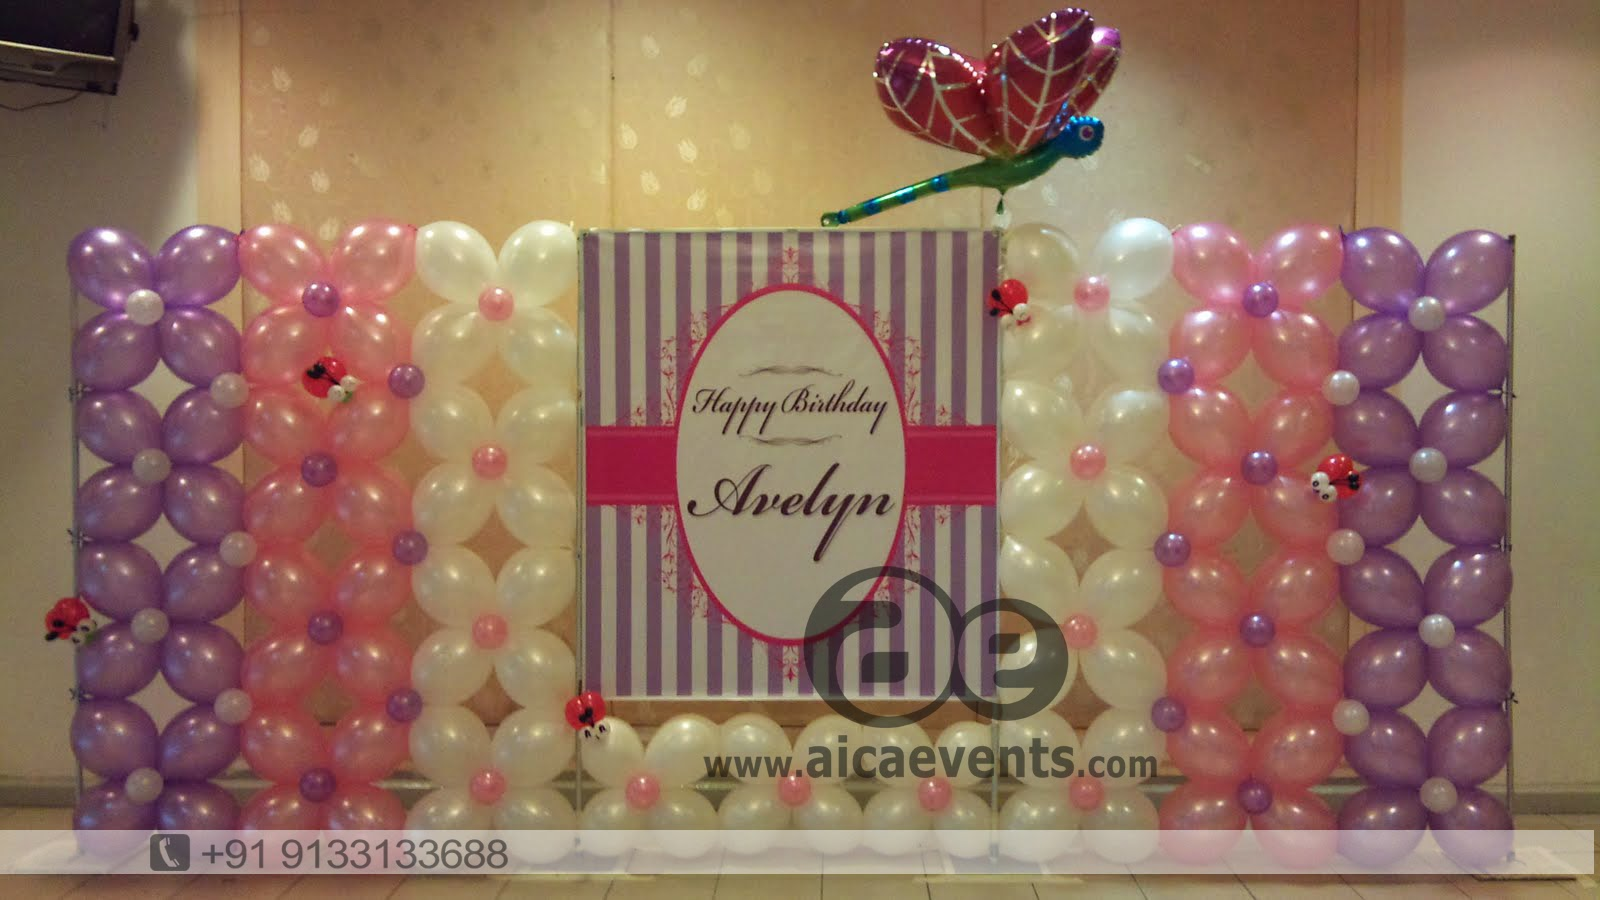 Decoration For Party Aicaevents Balloon Decoration For Birthday Parties